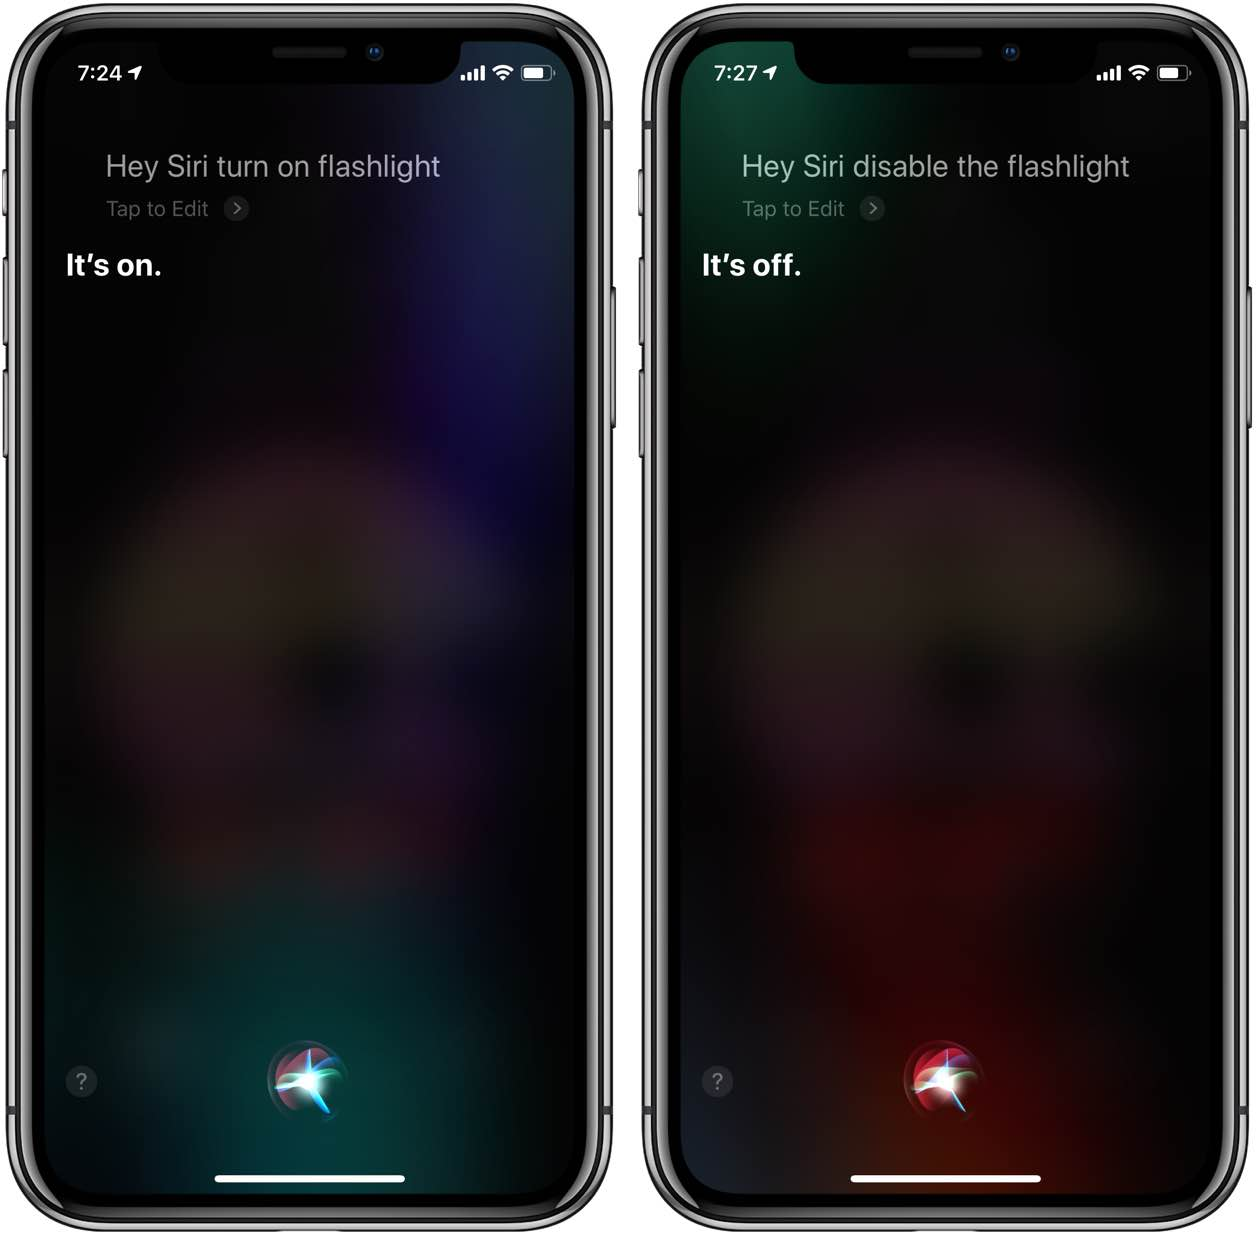 Siri flashlight commands on iOS 12